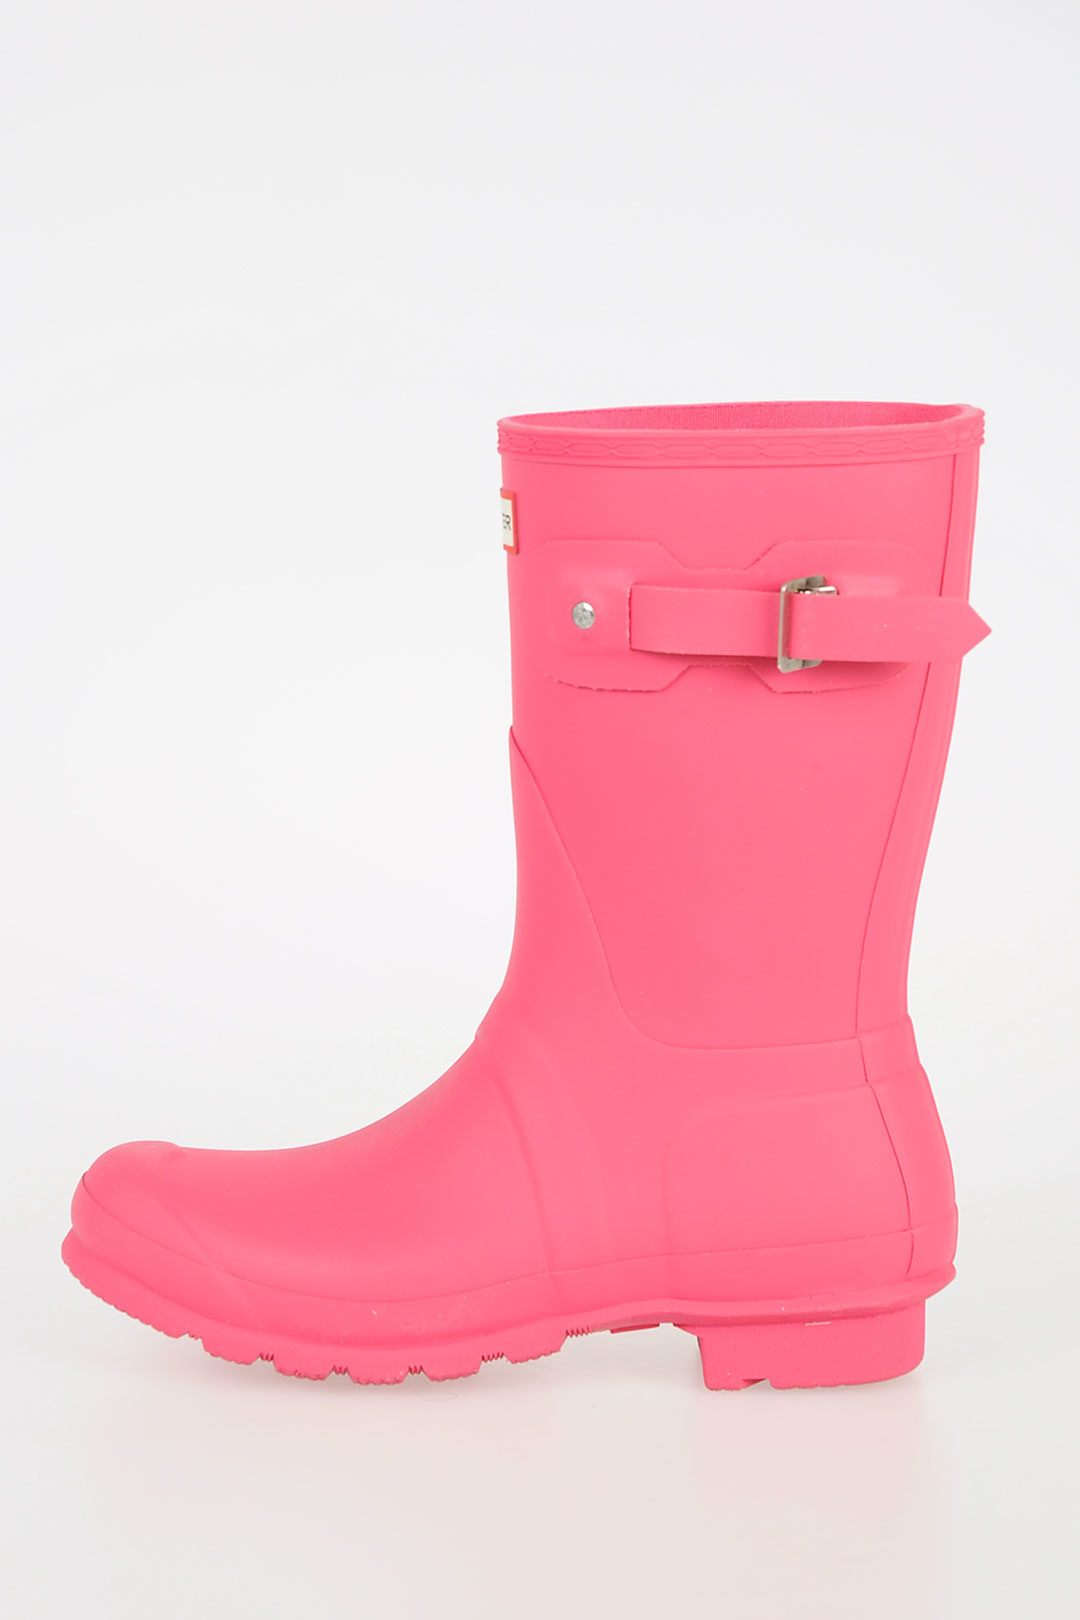 29e8a8c49 Hunter Rubber Ankle Boots women - Glamood Outlet